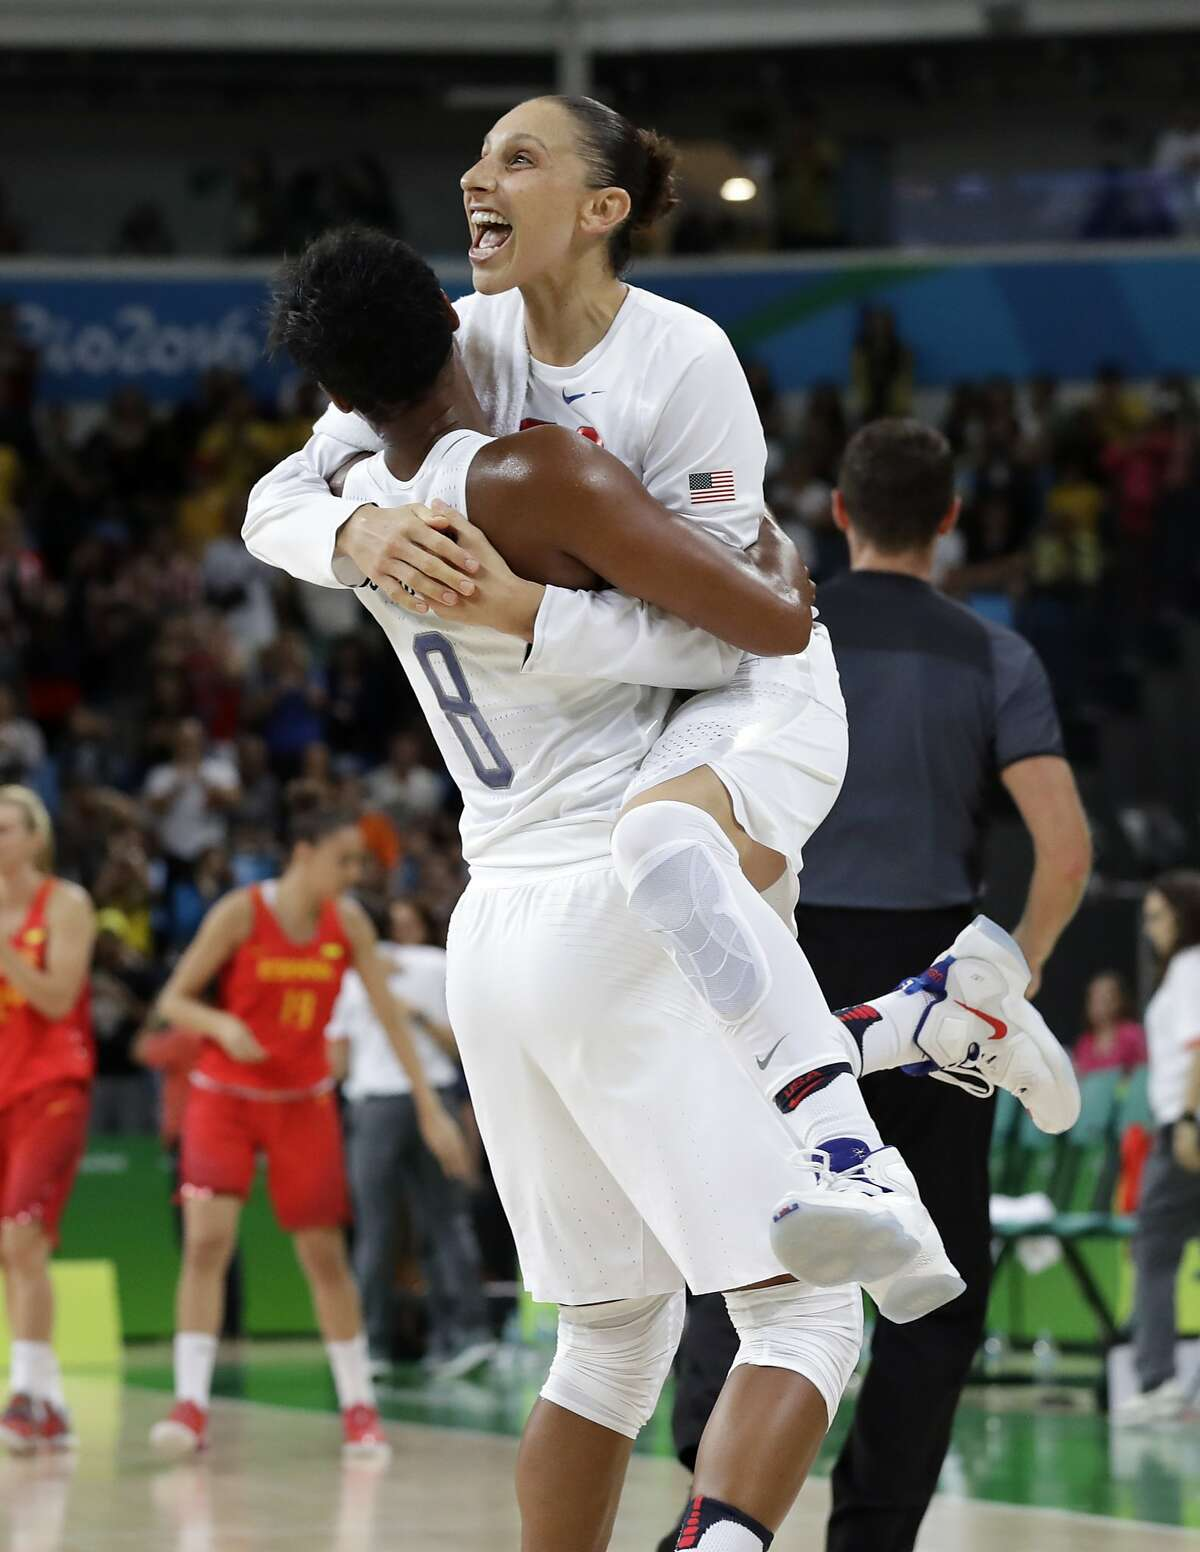 United States' Diana Taurasi, right, leaps into the arms of teammate Angel McCoughtry as they celebrate their win over Spain in a women's gold medal basketball game at the 2016 Summer Olympics in Rio de Janeiro, Brazil, Saturday, Aug. 20, 2016. (AP Photo/Eric Gay)